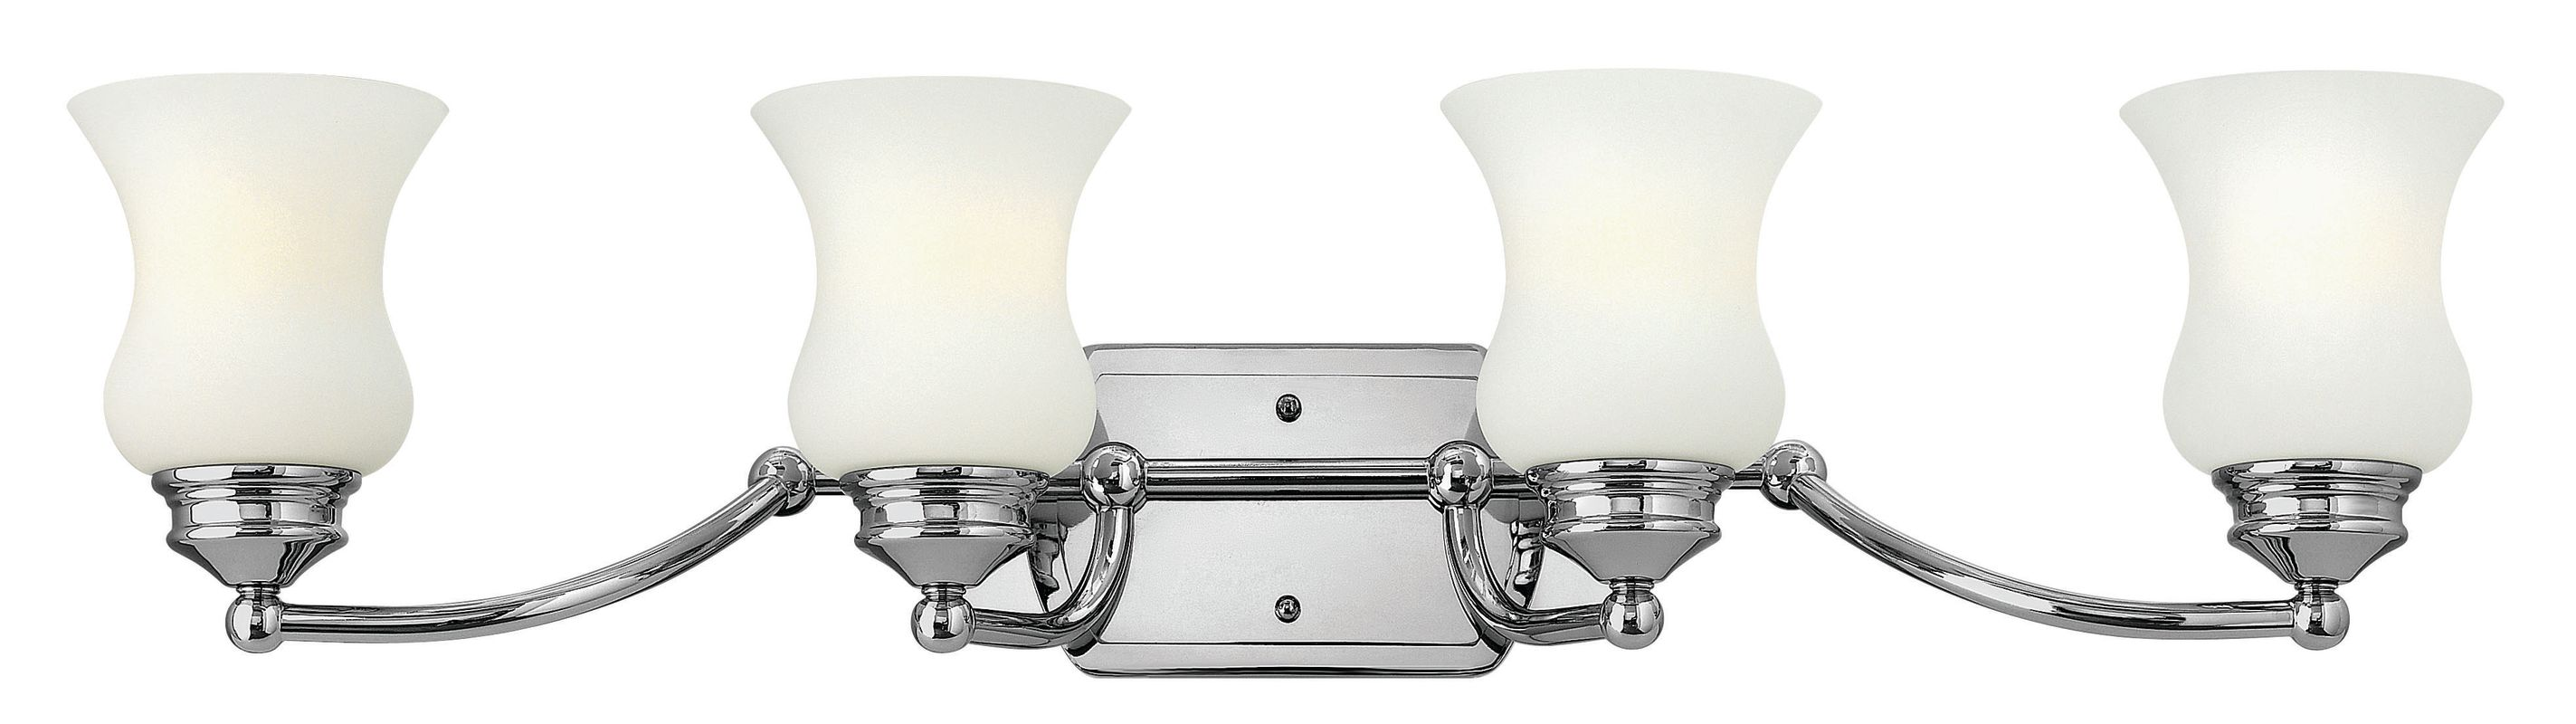 Hinkley Lighting 50014 4 Light Bathroom Vanity Light from the Sale $239.00 ITEM: bci2493773 ID#:50014CM UPC: 640665500134 :